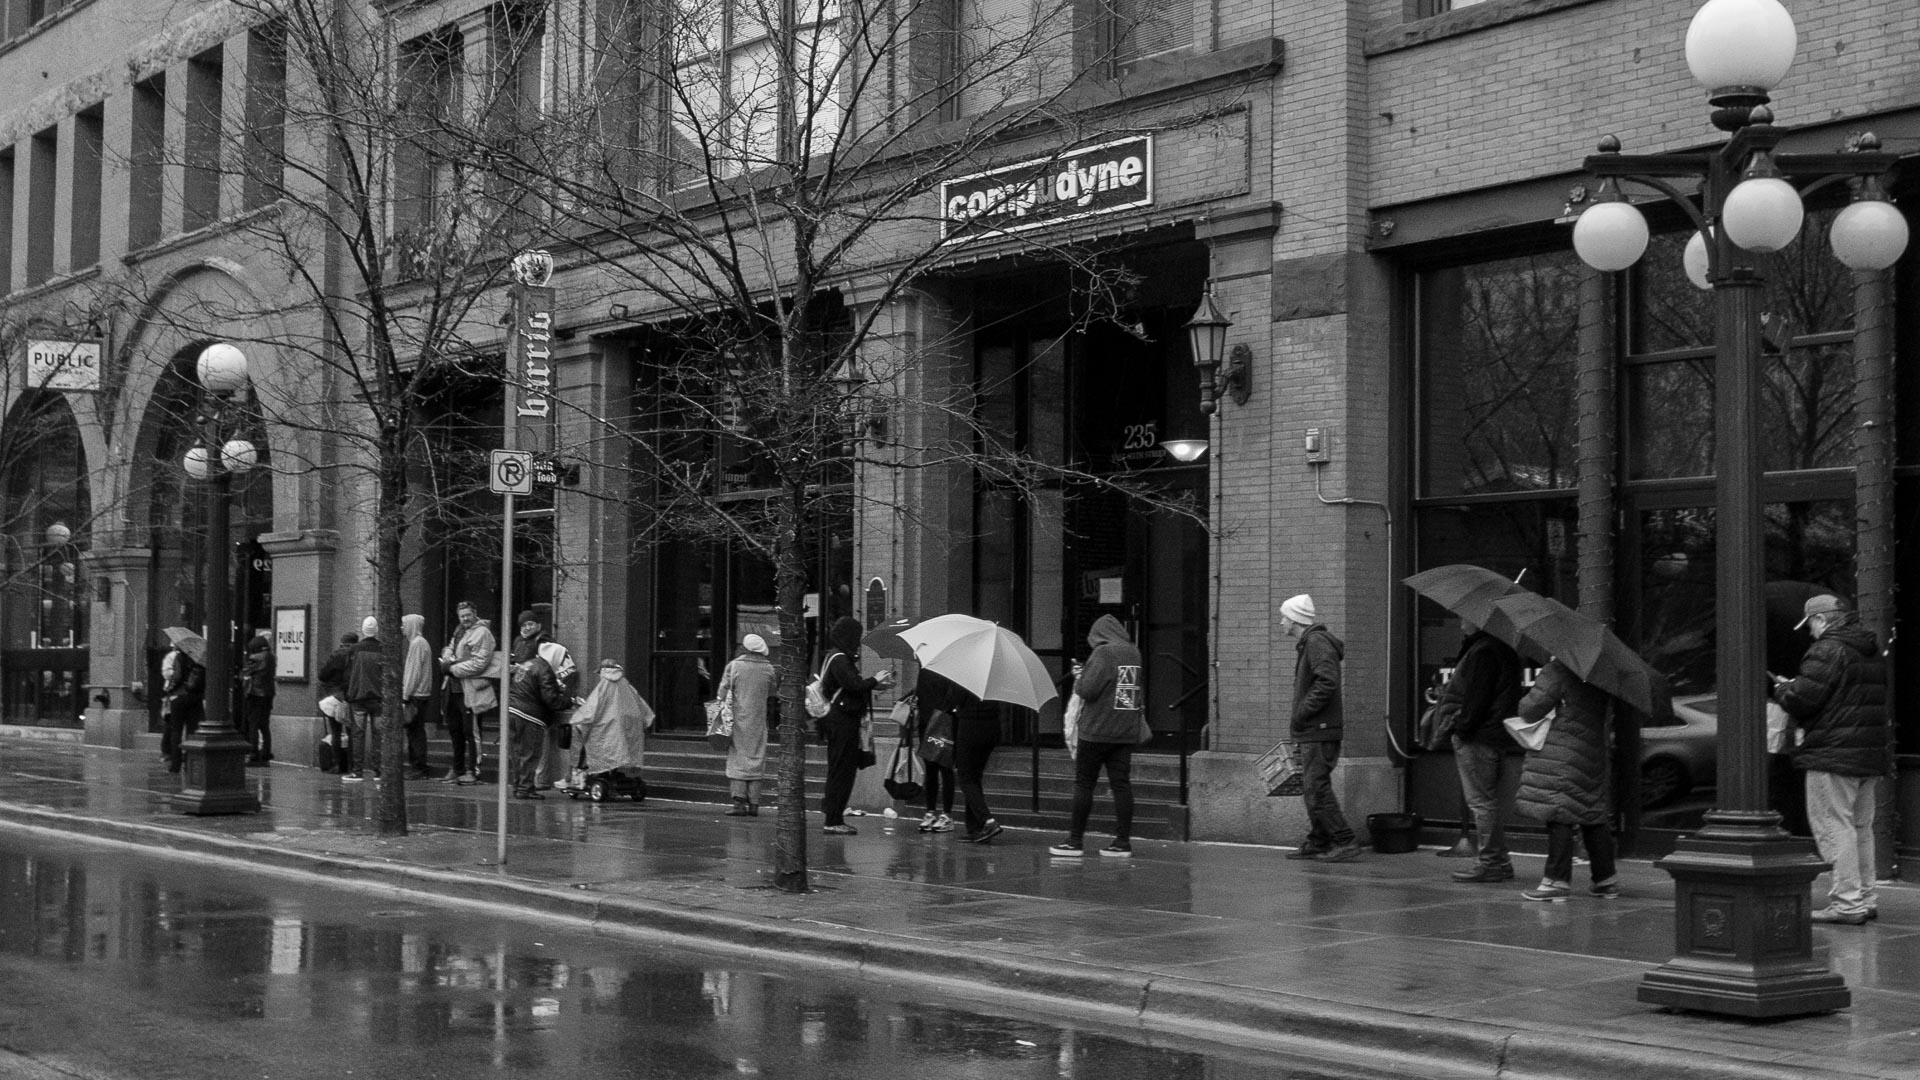 Street photography by Tom Dunn. Waiting in line for perishable food during the lockdown.